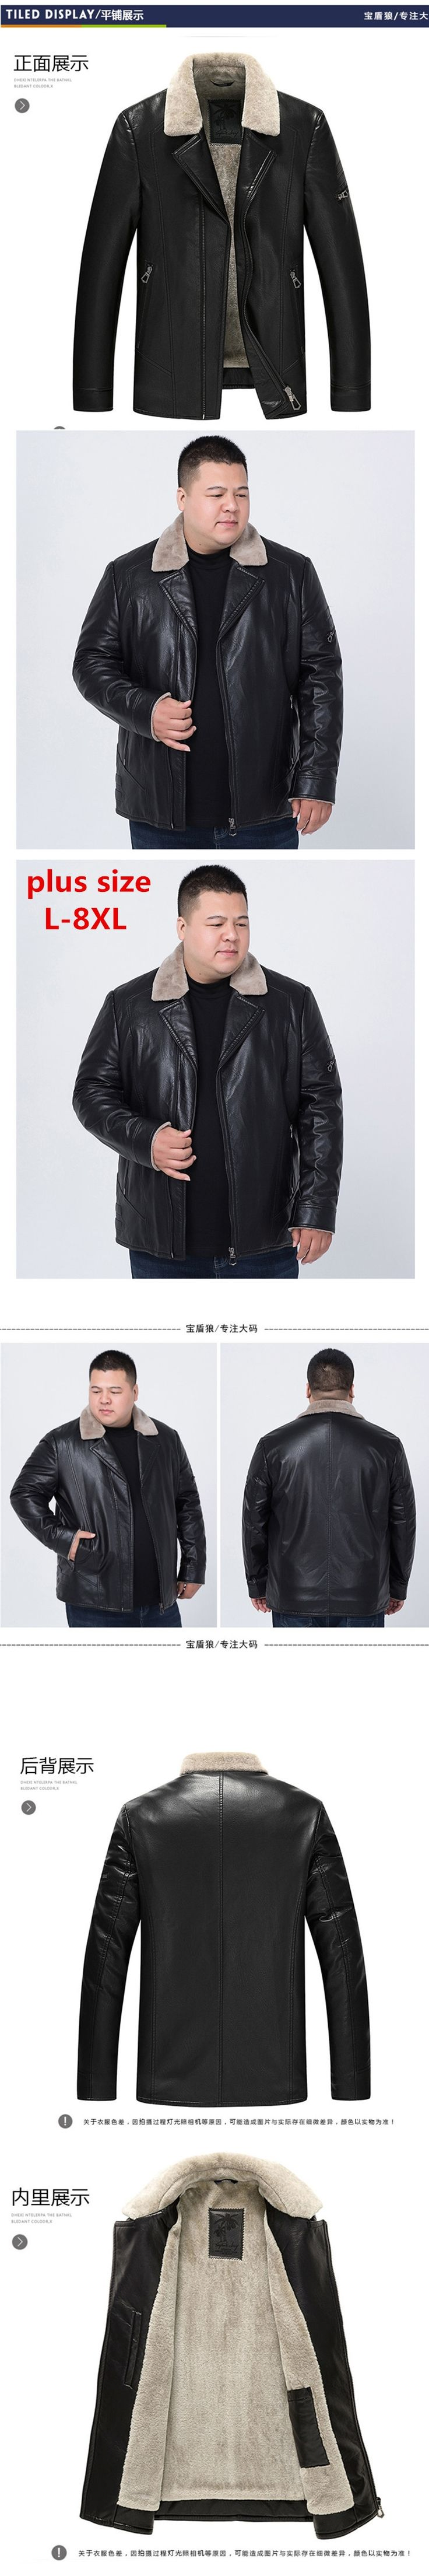 2017 NEW Plus size 8XL 7XL 6XL 5XL jacket fur collar genuine leather jacket men black sheepskin coat winter bomber jacket male